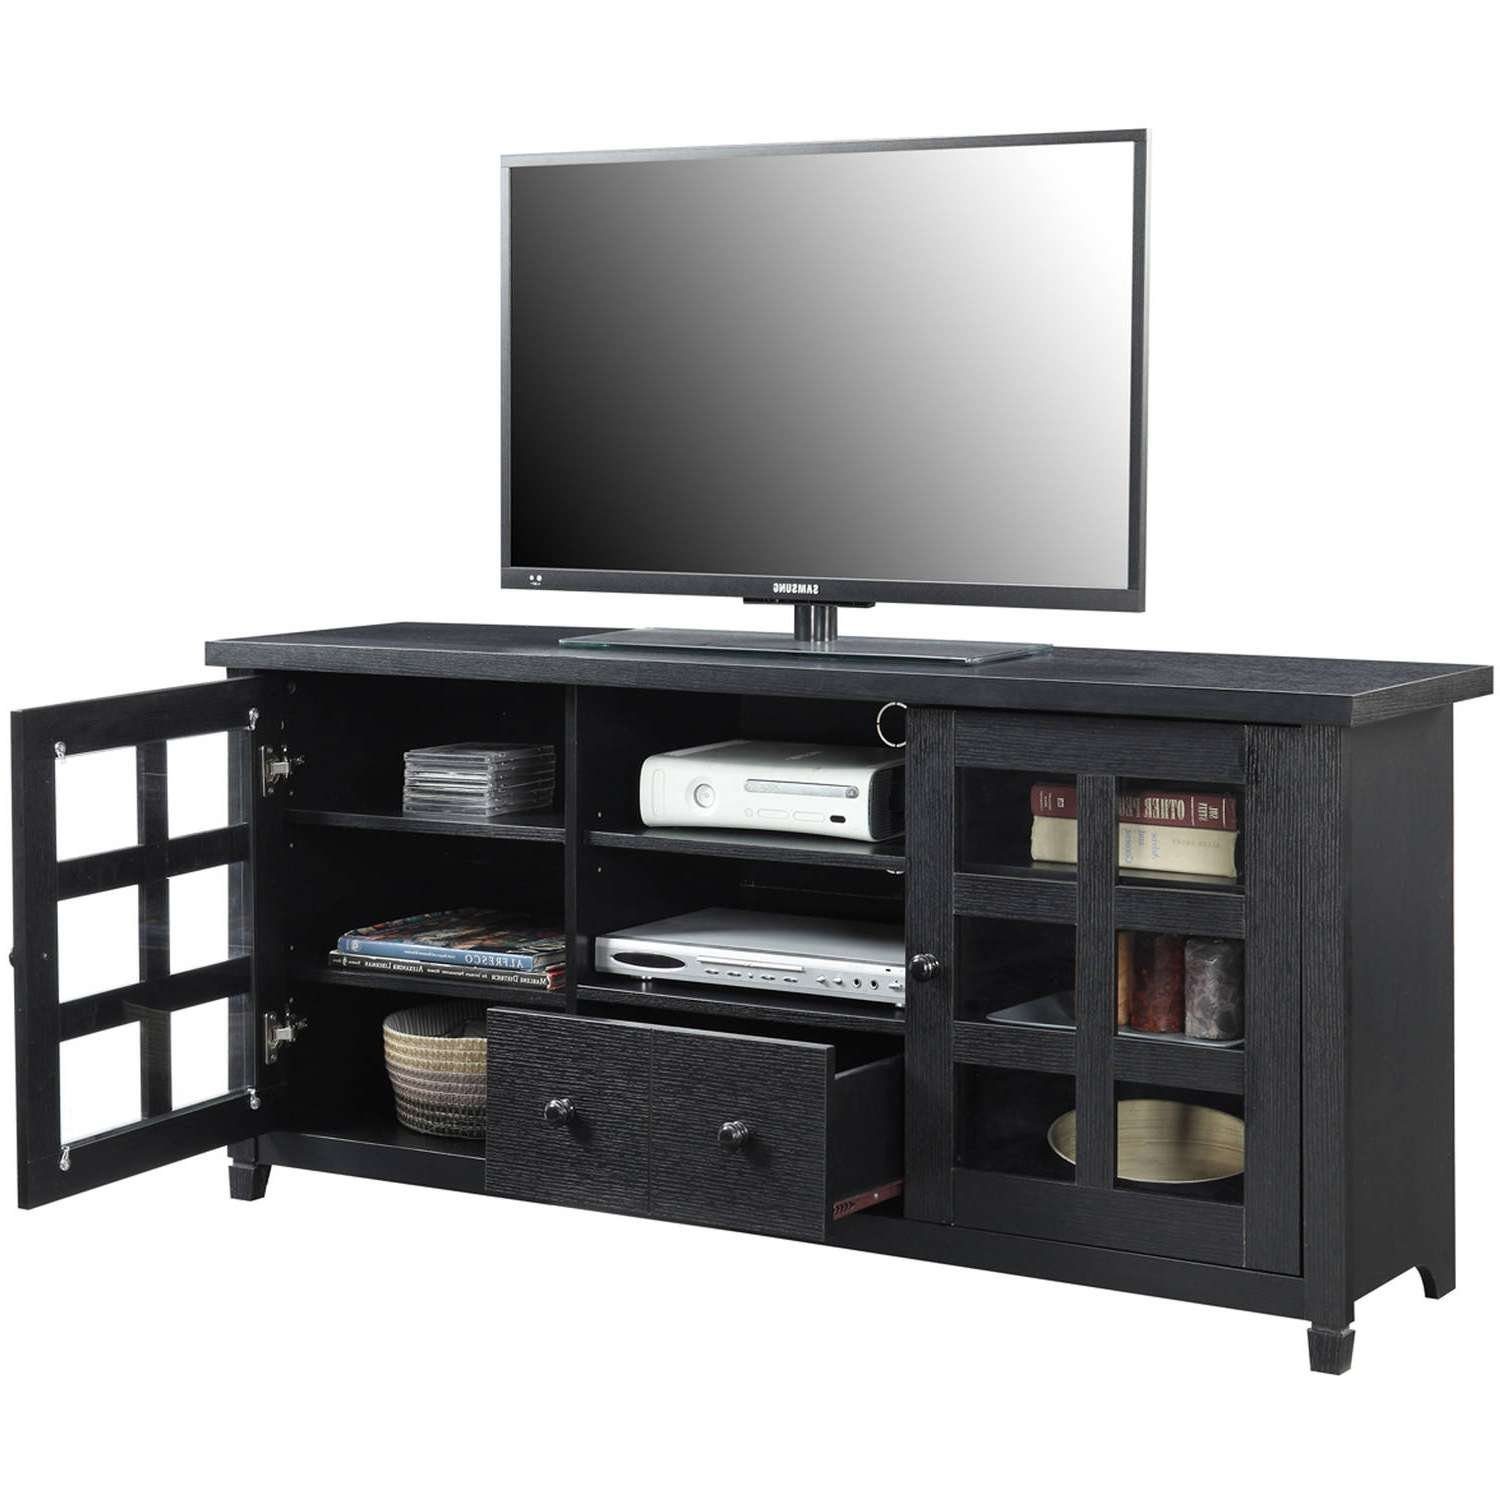 Convenience Concepts Newport Park Lane Tv Stand For Tvs Up To 60 Inside Lane Tv Stands (View 9 of 15)